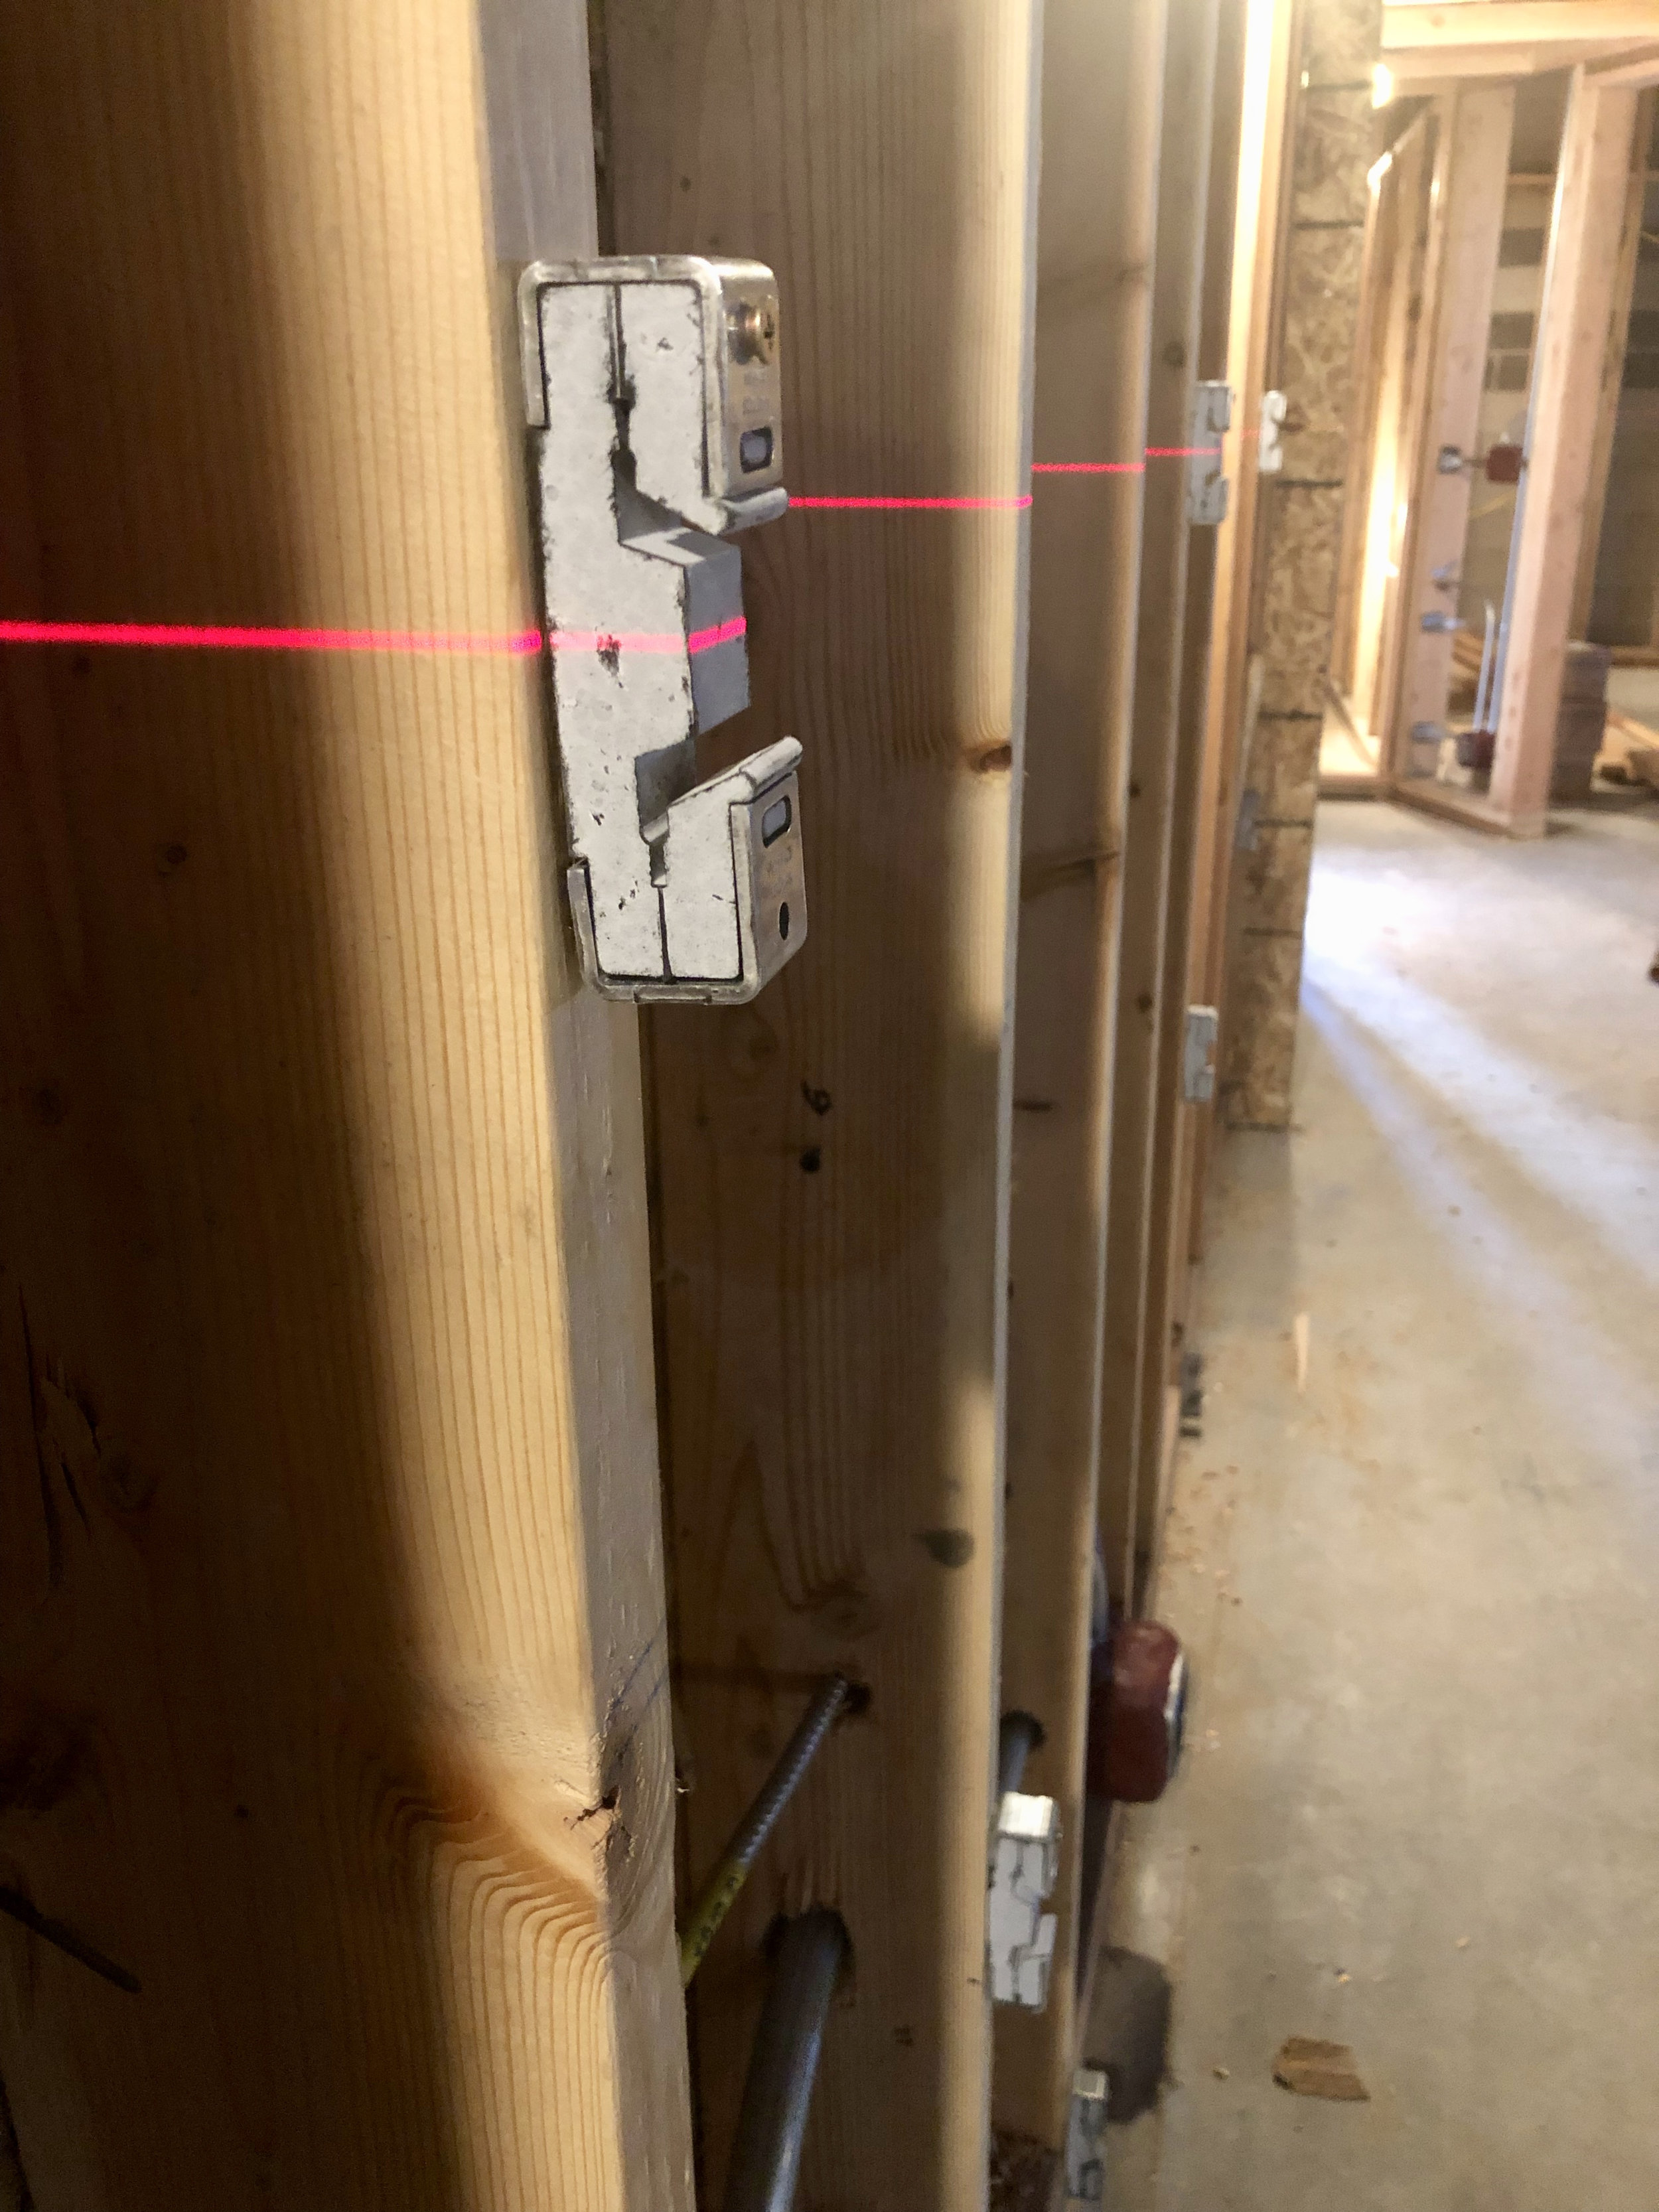 The clips are screwed into the studs and then the hat channel hangs in the clips. The rubber material helps isolate the sheetrock from the studs and drops the sound transmission through the walls significantly.